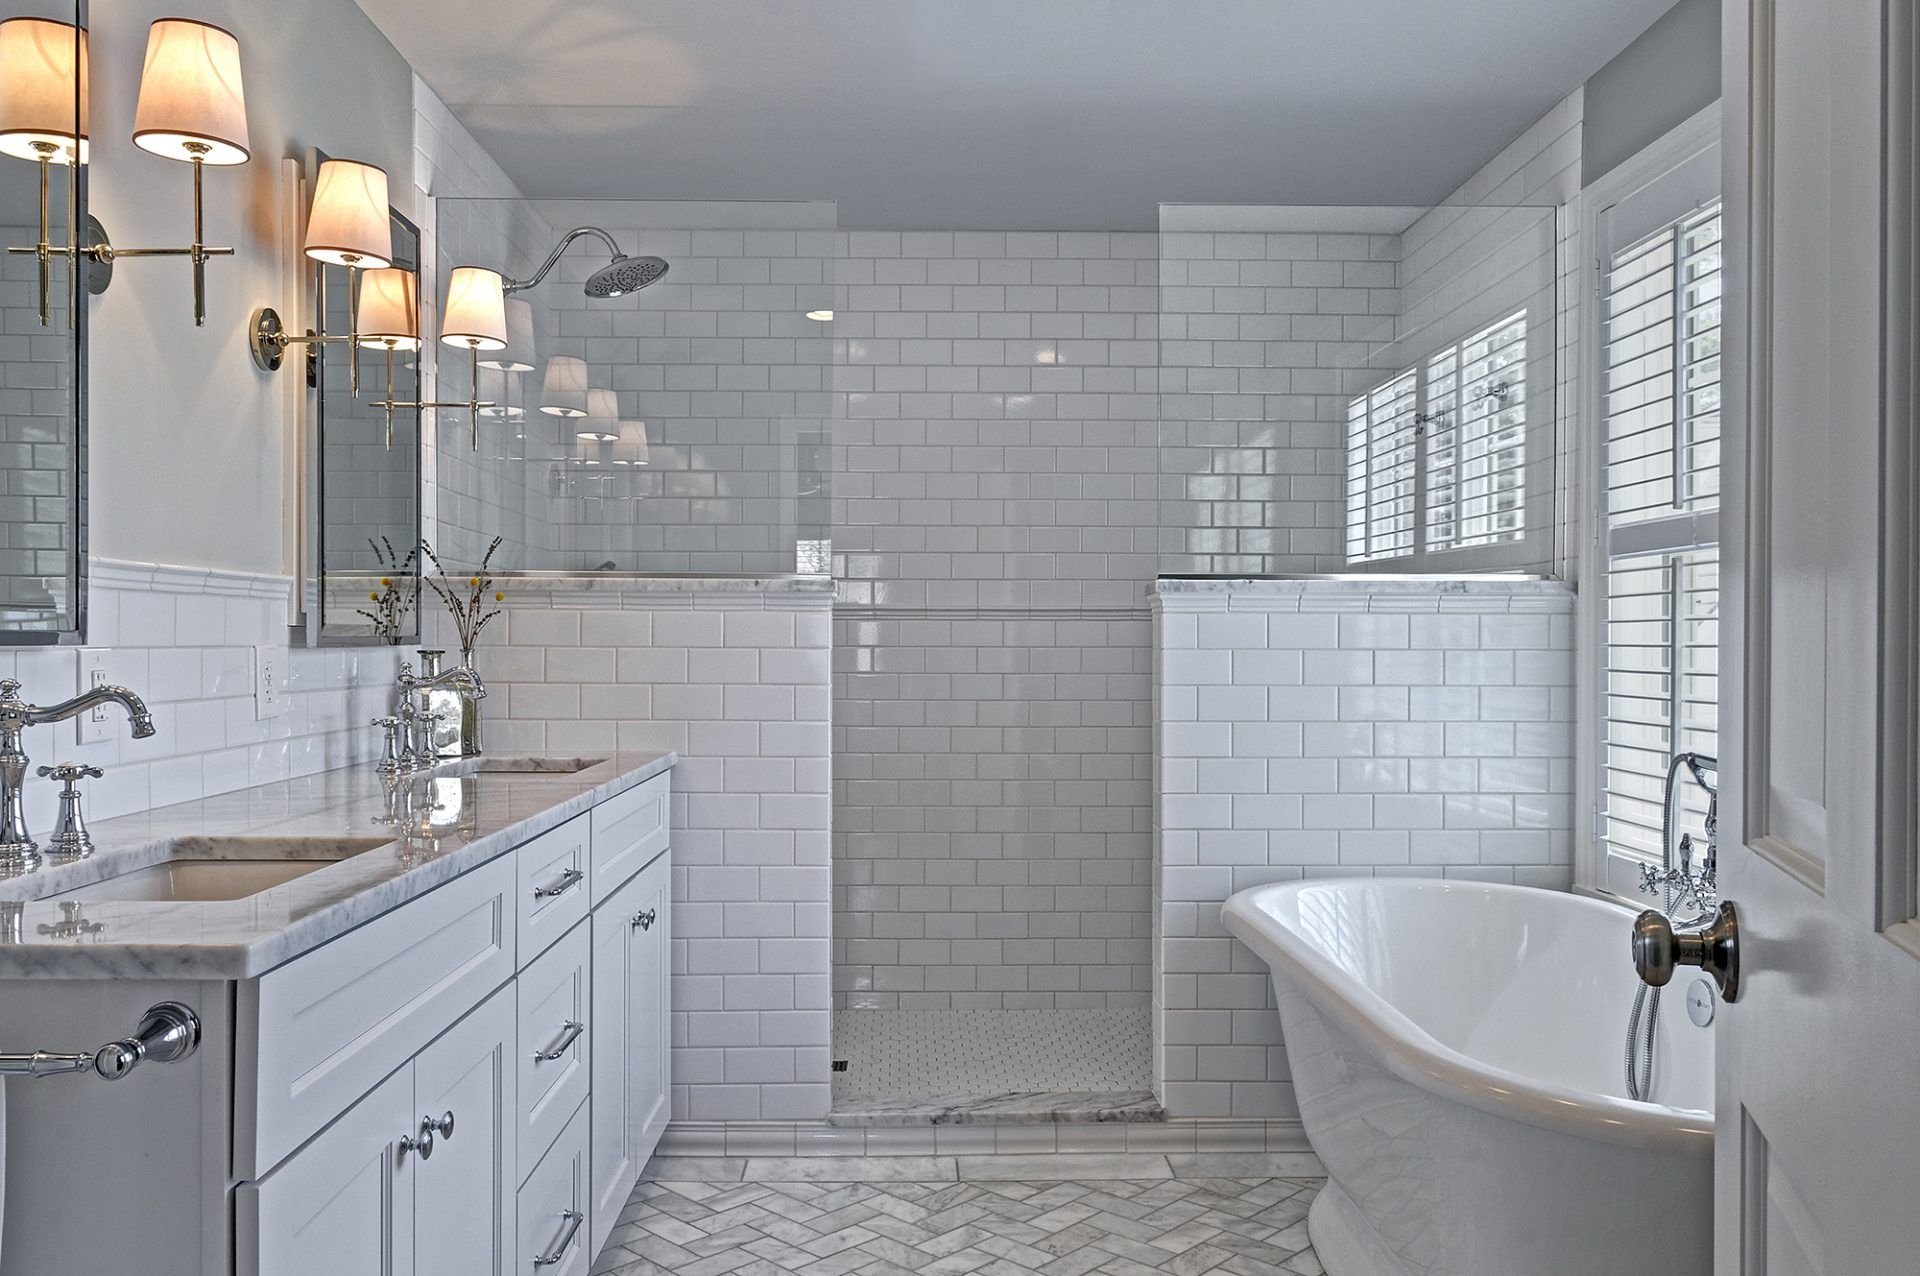 Master bath, Upper Arlington, Dave Fox, Remodel, tile, herringbone, marble, walk in shower, hexagon tile, bath tub, freestanding tub